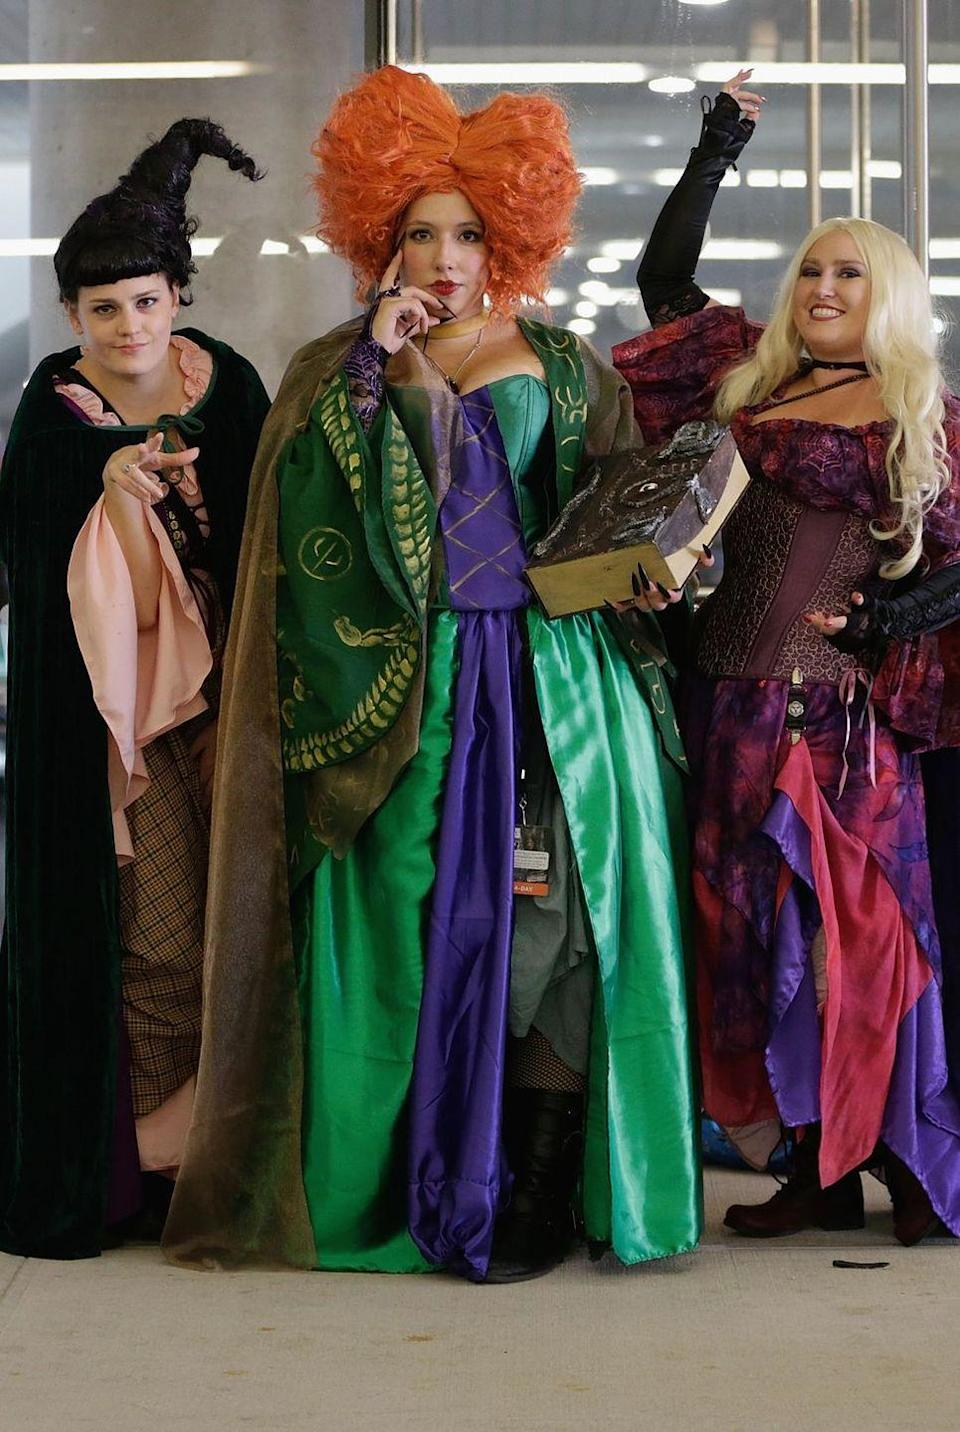 """<p>You'll put a spell on everyone if you and your girls dress up as the Sanderson Sisters from <em>Hocus Pocus</em>.</p><p><a class=""""link rapid-noclick-resp"""" href=""""https://www.amazon.com/Spirit-Halloween-Winifred-Wig-Deluxe/dp/B0728DQ8YD?tag=syn-yahoo-20&ascsubtag=%5Bartid%7C10070.g.2683%5Bsrc%7Cyahoo-us"""" rel=""""nofollow noopener"""" target=""""_blank"""" data-ylk=""""slk:SHOP WINIFRED WIG"""">SHOP WINIFRED WIG</a></p>"""